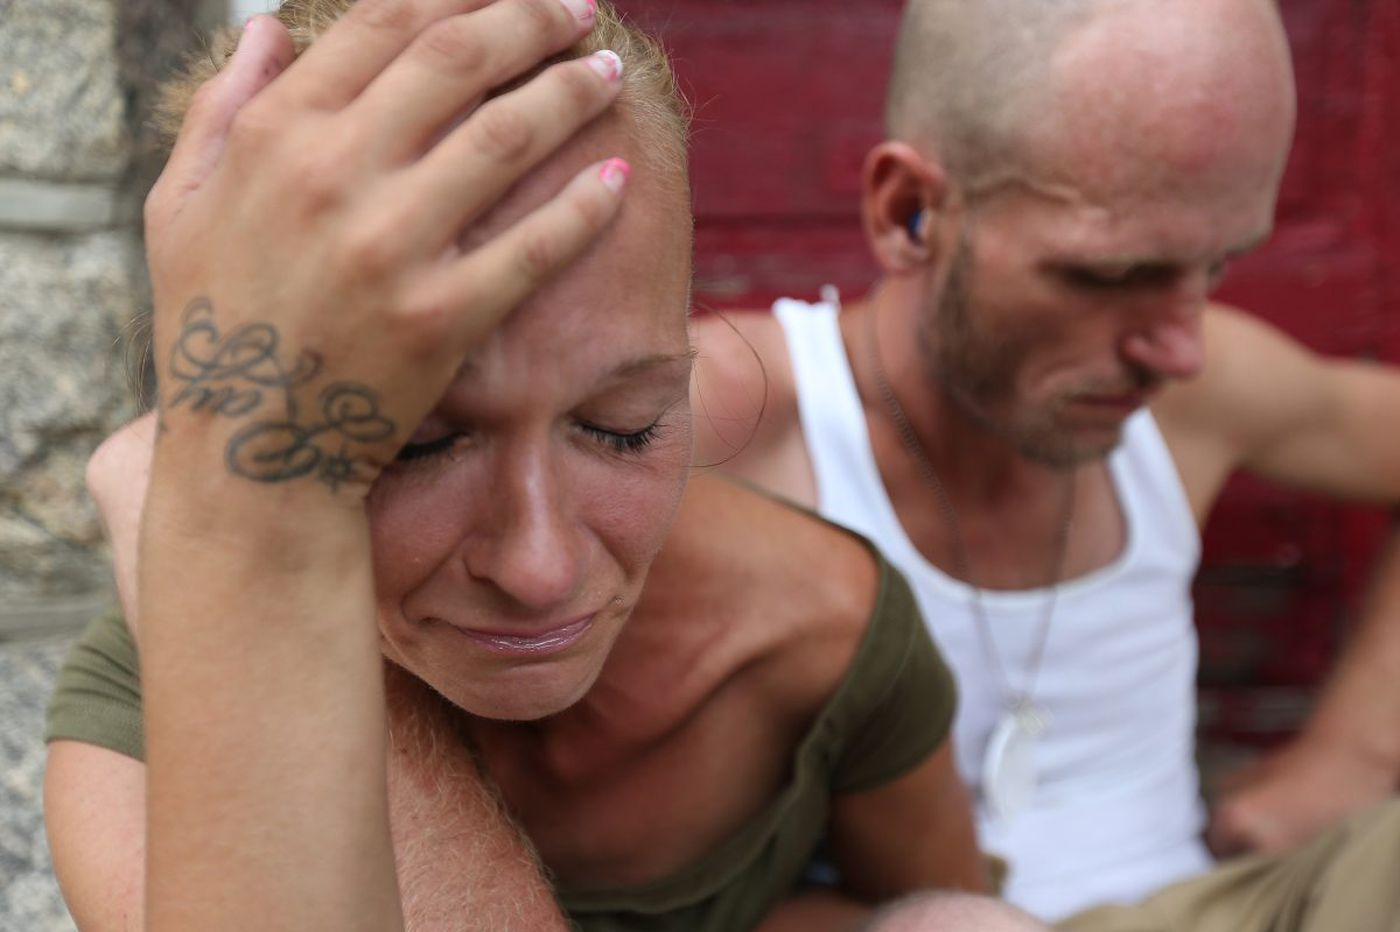 Hooked and hustling heroin: A couple's life in Kensington